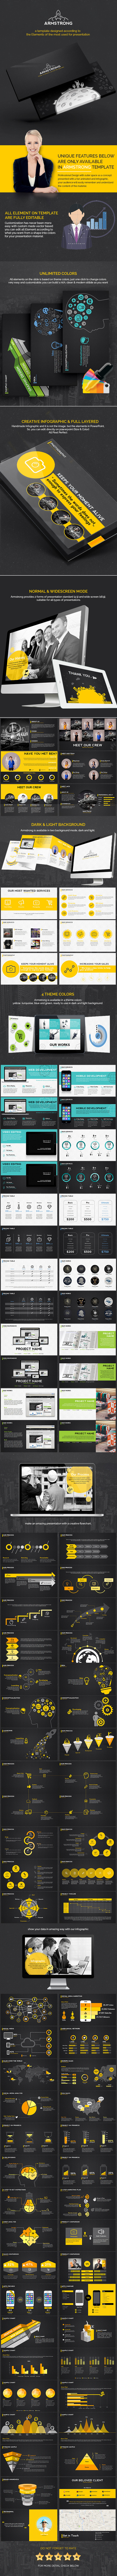 Armstrong outer space powerpoint template by inspirasign armstrong outer space powerpoint template business powerpoint templates toneelgroepblik Images